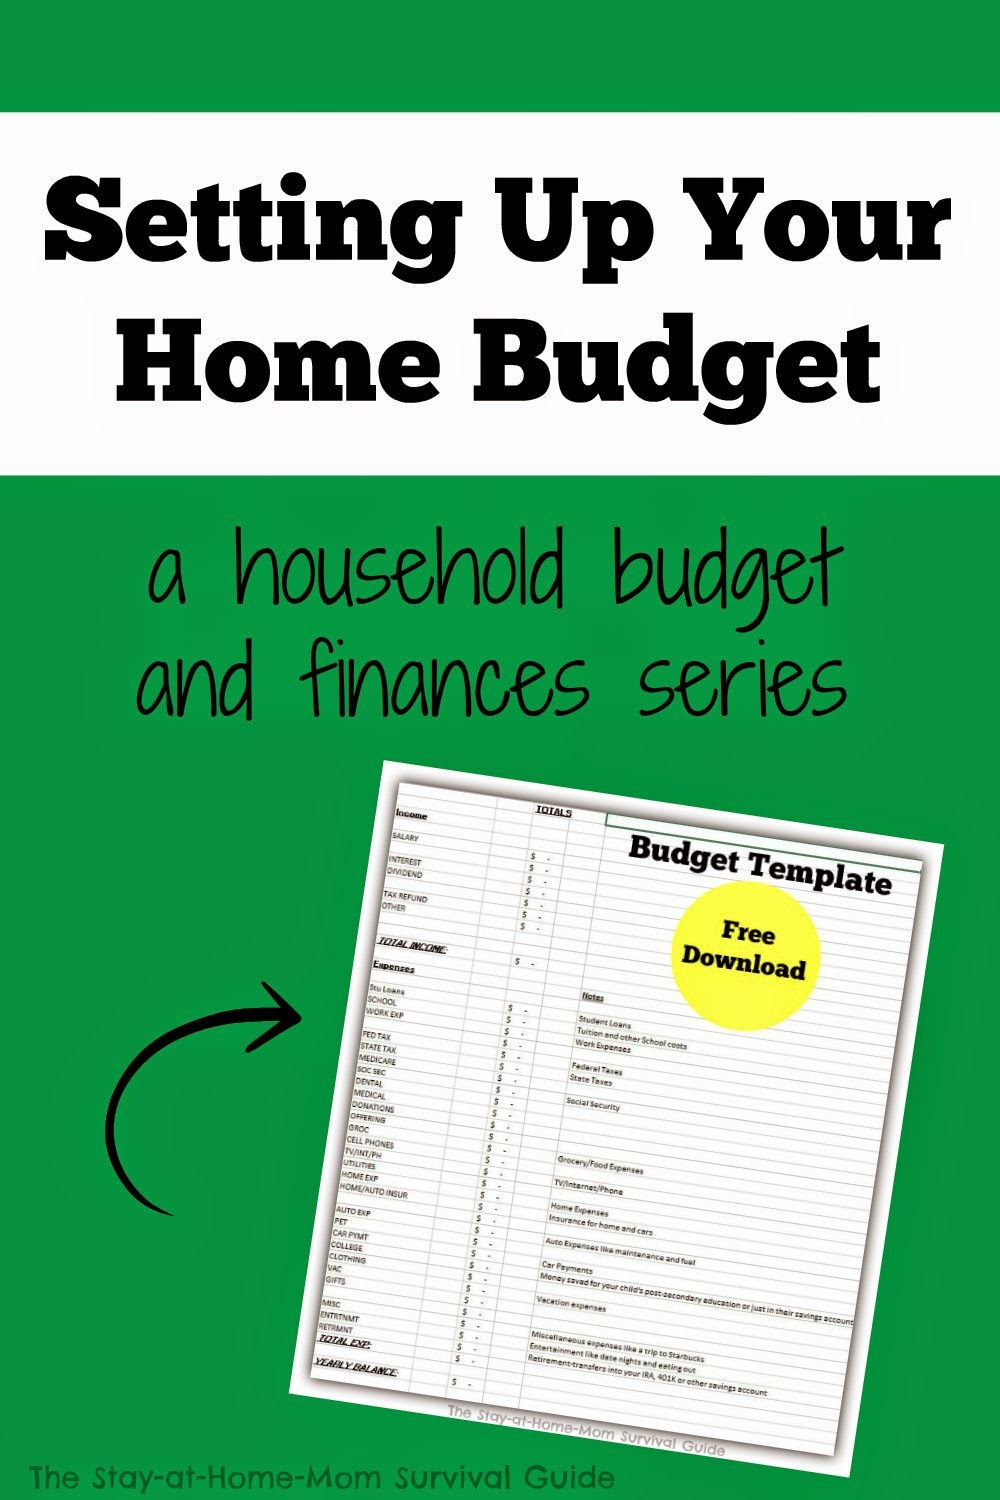 Setting Up Your Home Budget Free Download  The StayatHomeMom Survival Guide